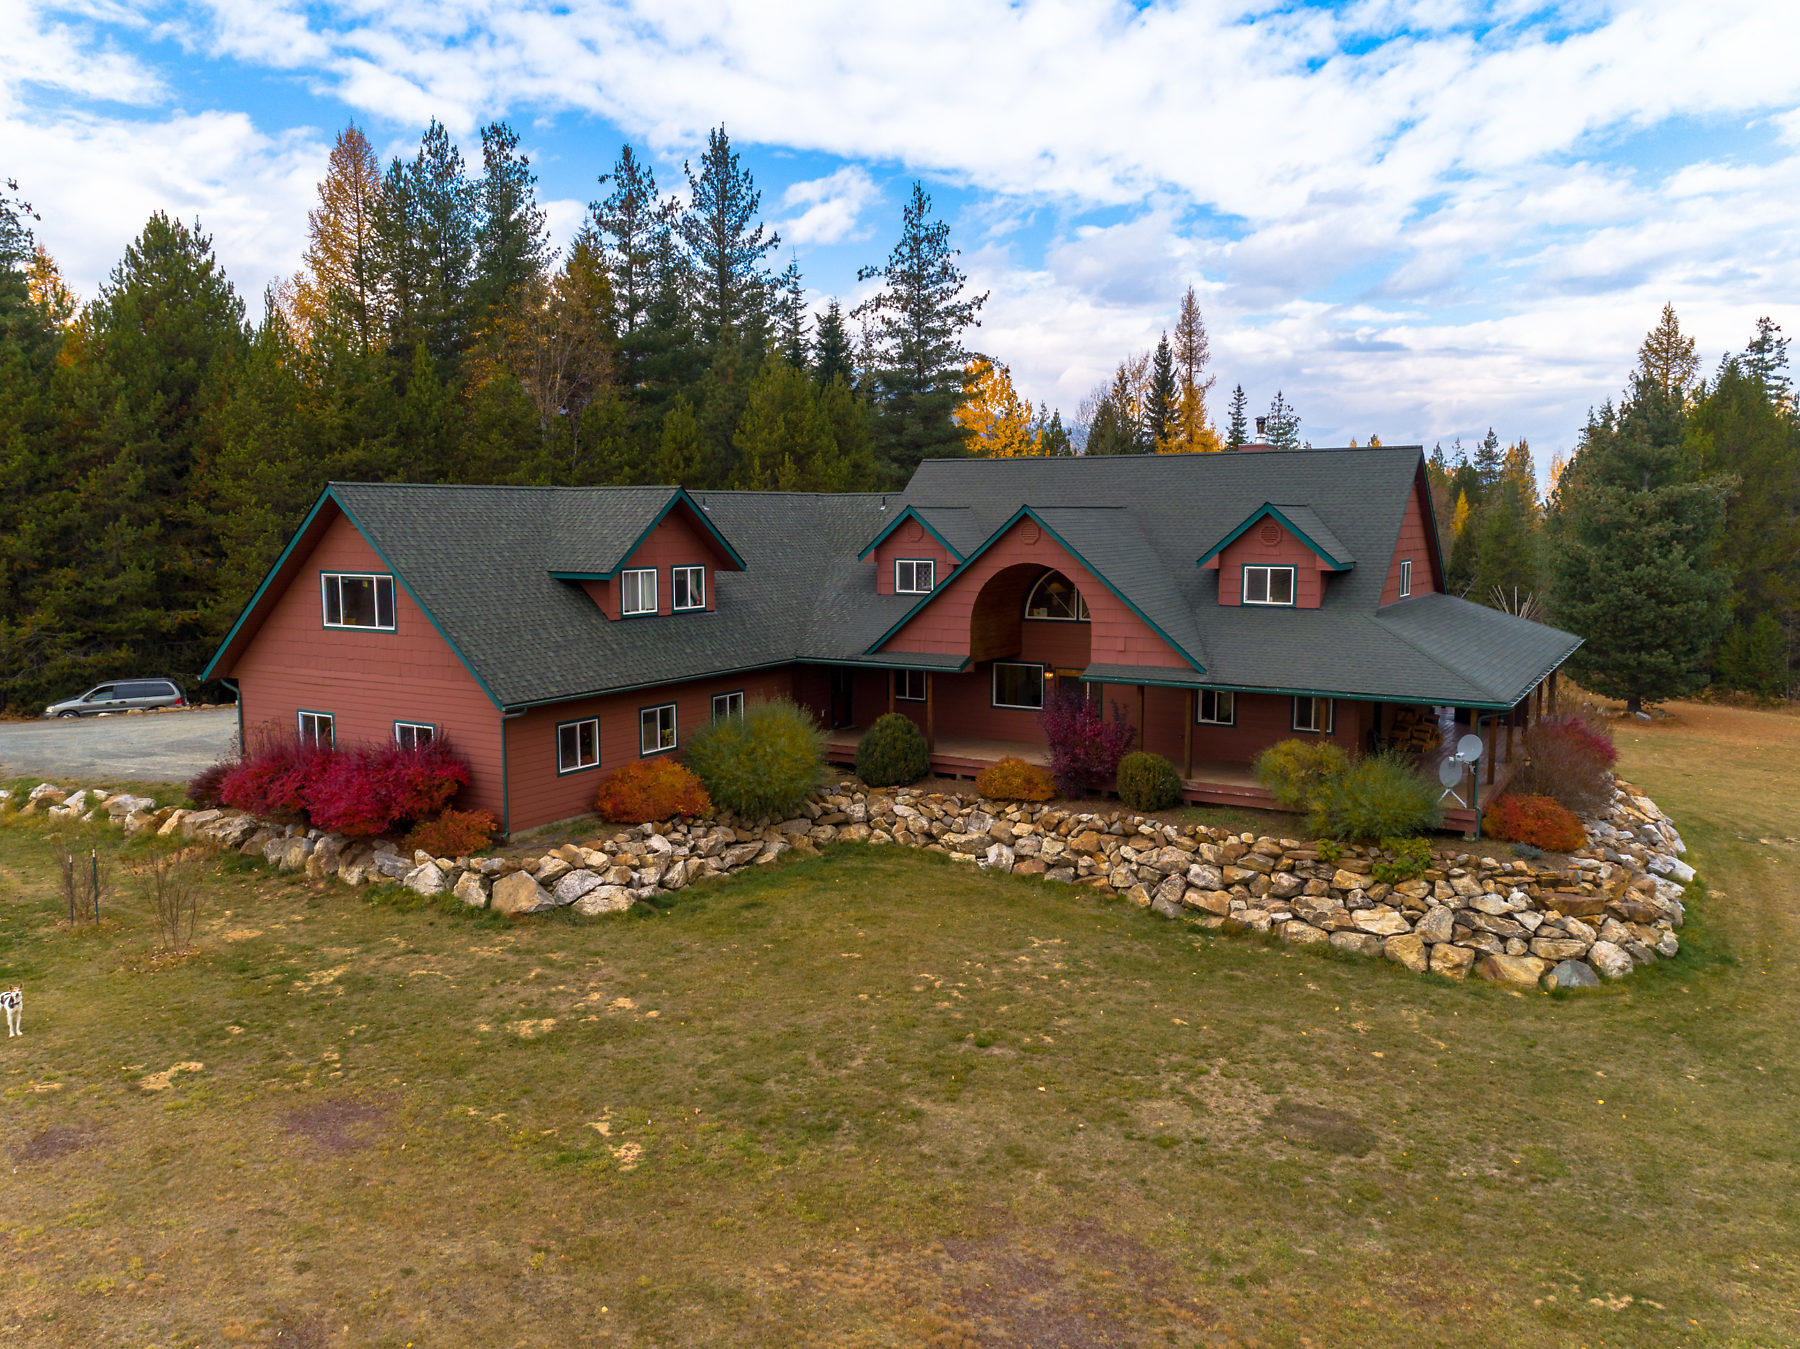 Sandpoint Homes for Sale Listings | Tomlinson Sotheby's